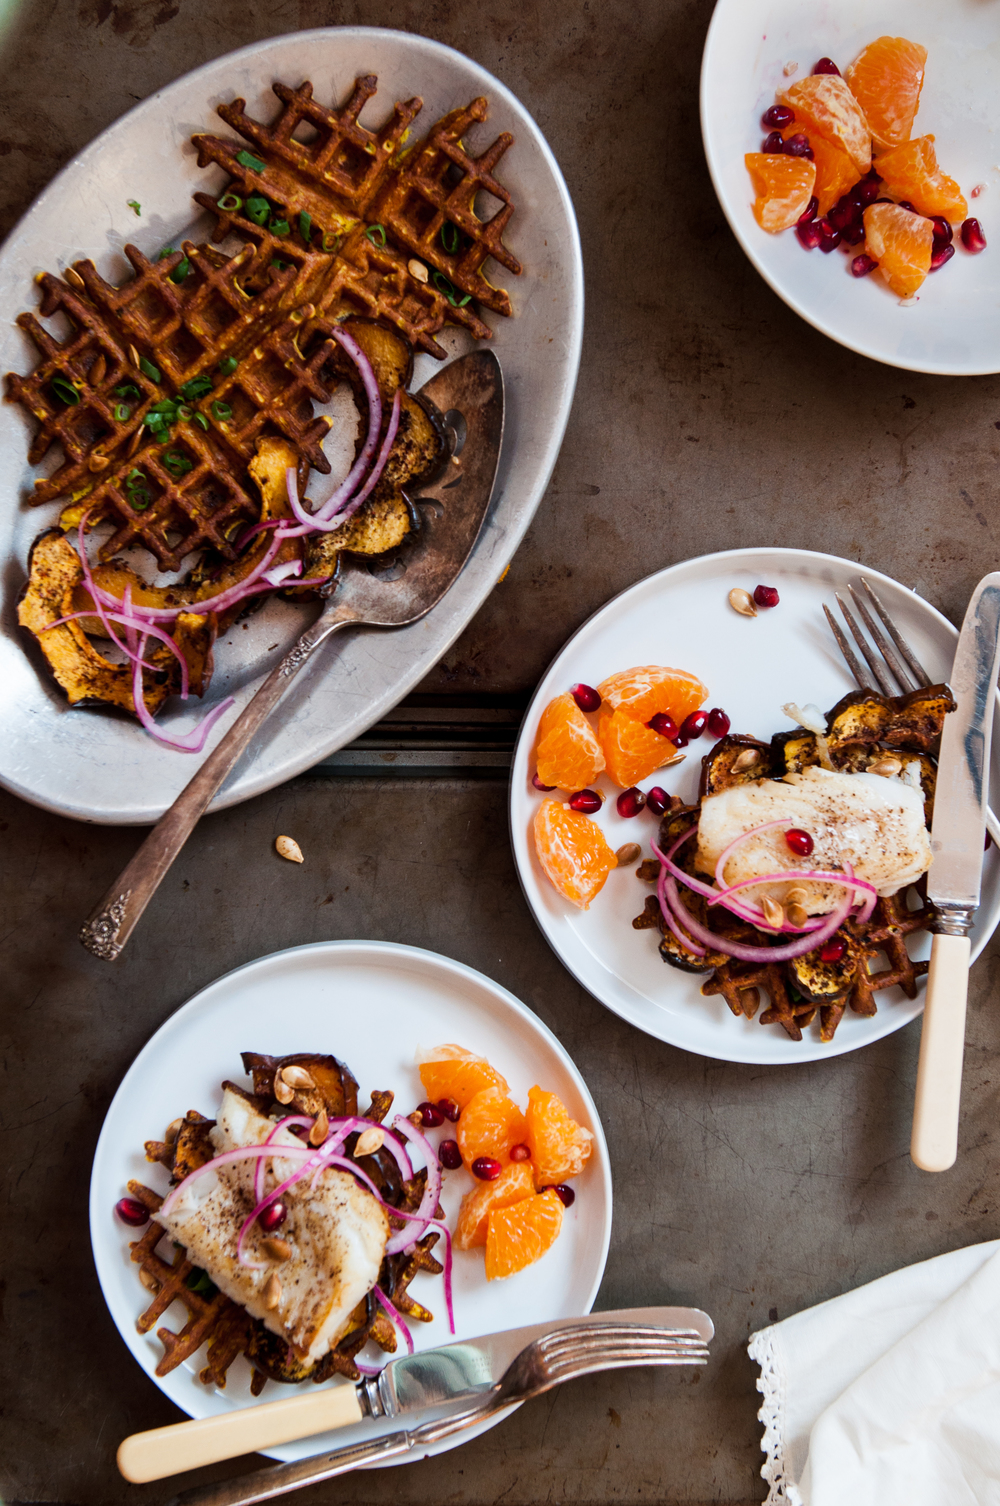 Chickpea-waffles-roast-squash-fried-halibut.jpg